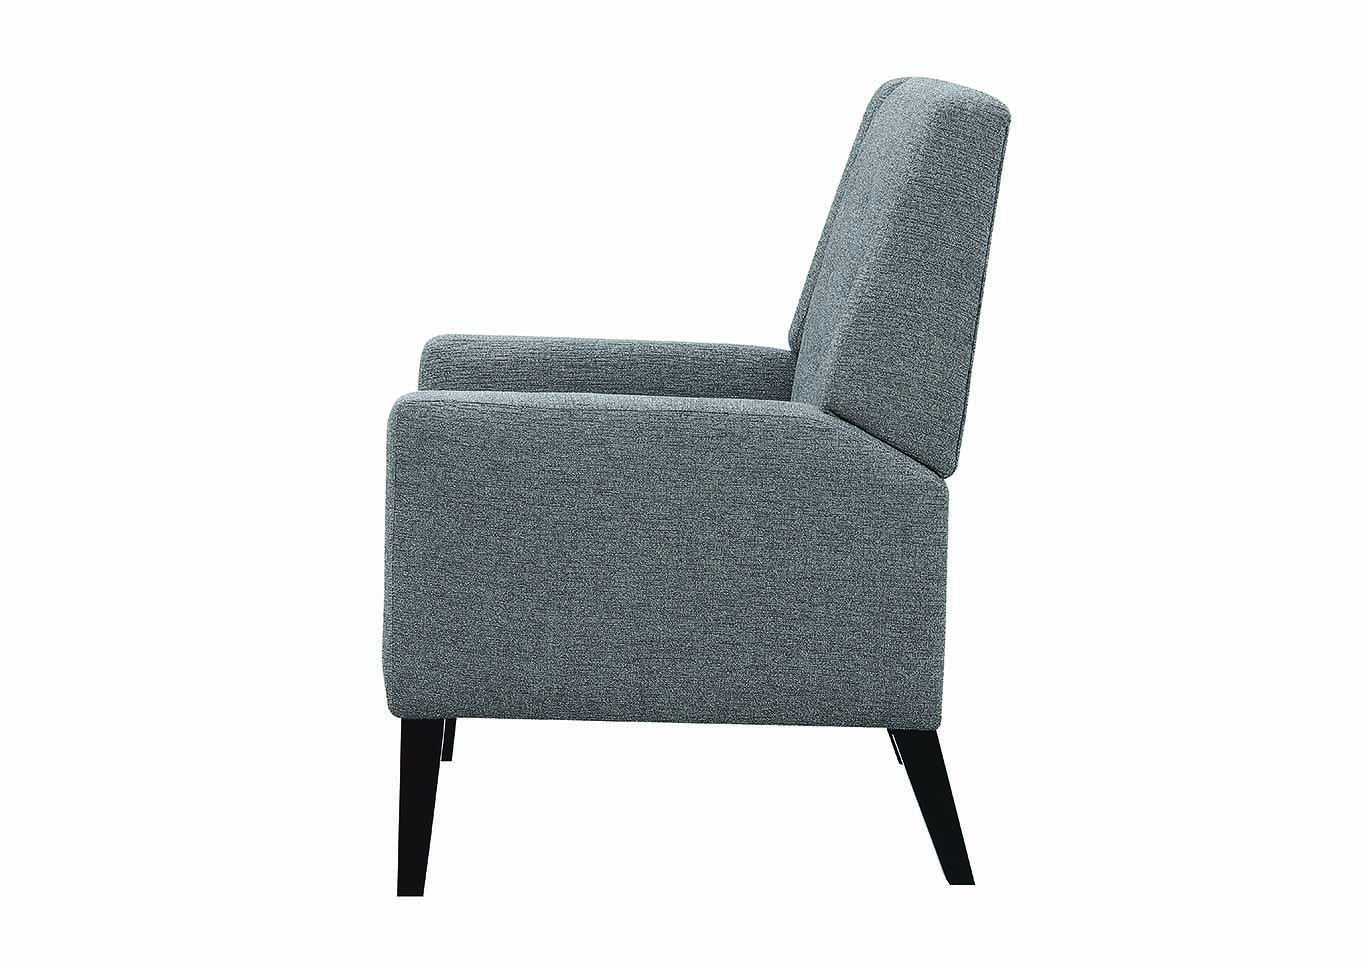 Taupe Accent Chairs.Showcase Furniture Mt Dora Fl Taupe Accent Chair